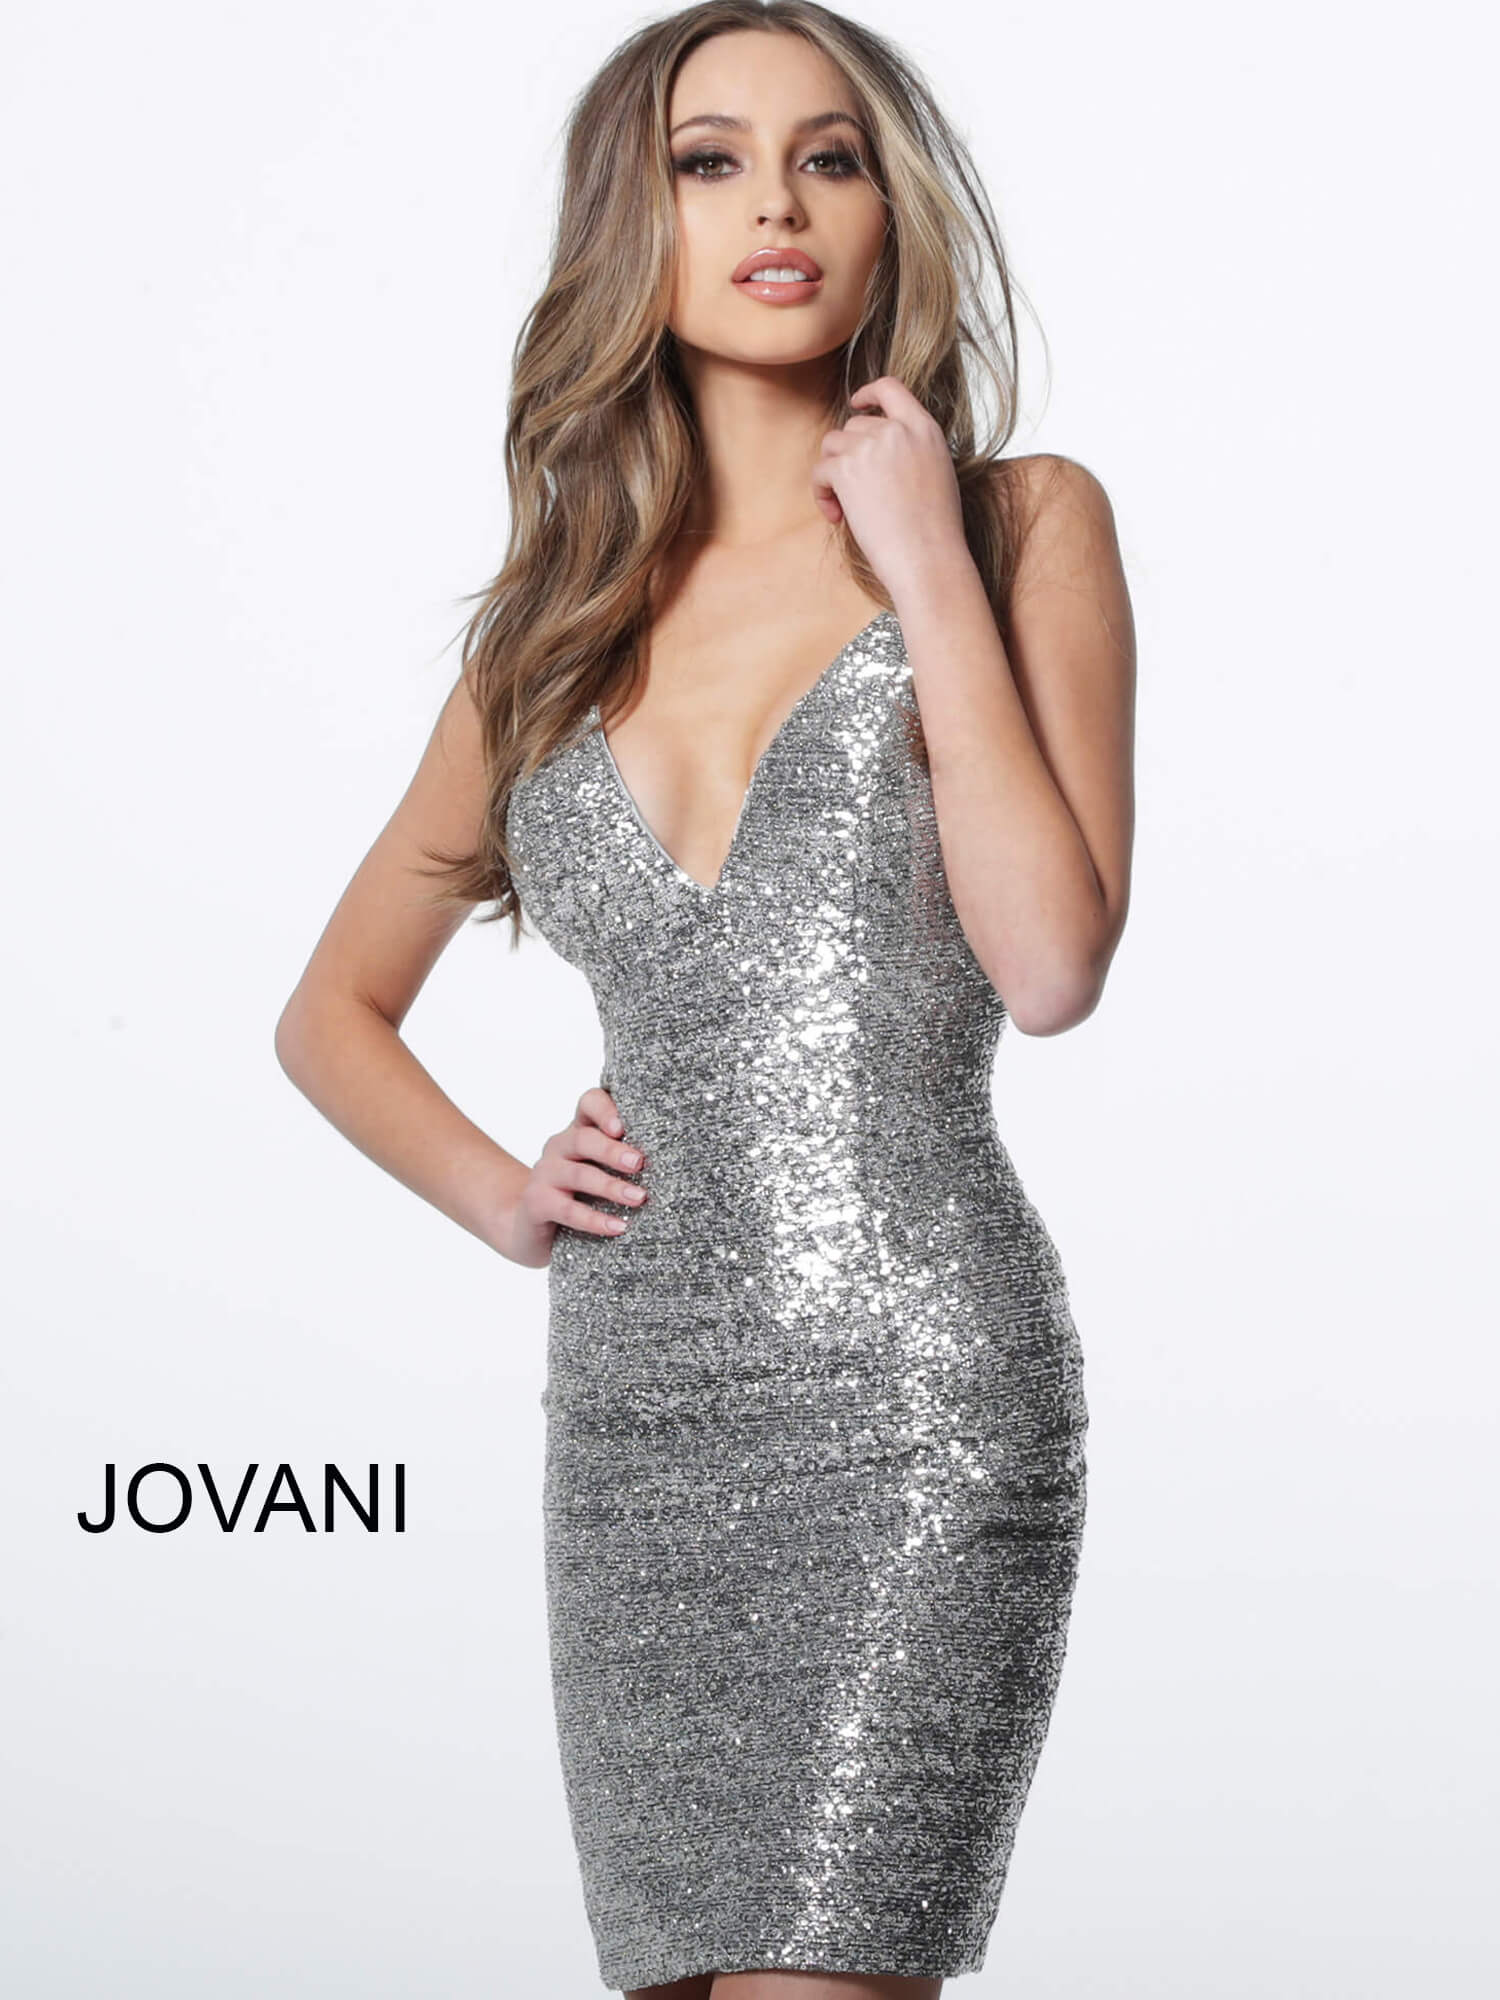 jovani Jovani 1113 Silver Backless Fitted Sequin Cocktail Dress  on mobile 2